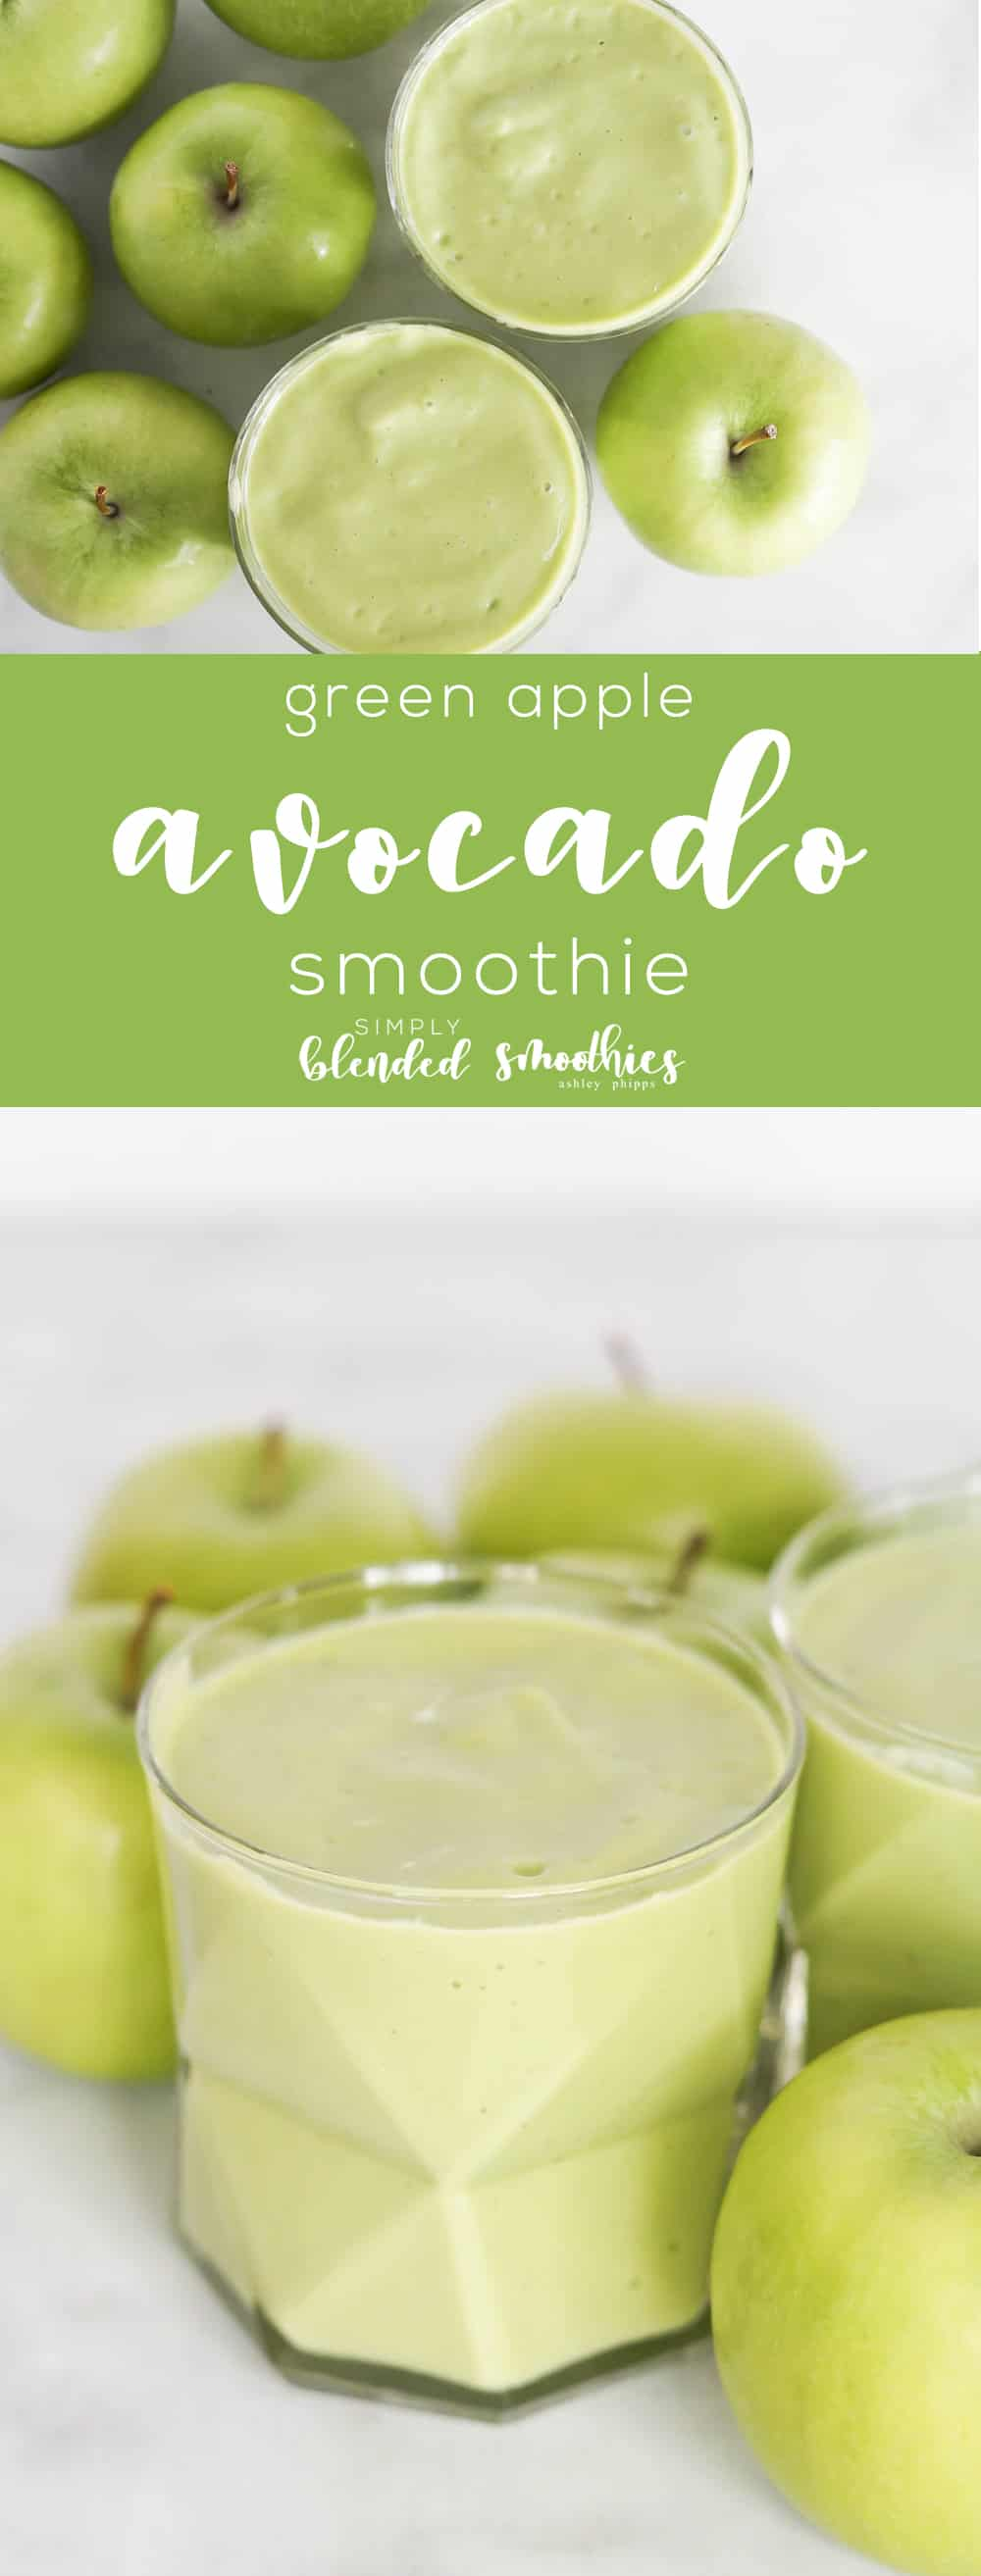 Green Apple and Avocado Smoothie - avocado makes this smoothie so rich and smooth and green apples makes this tart and refreshing